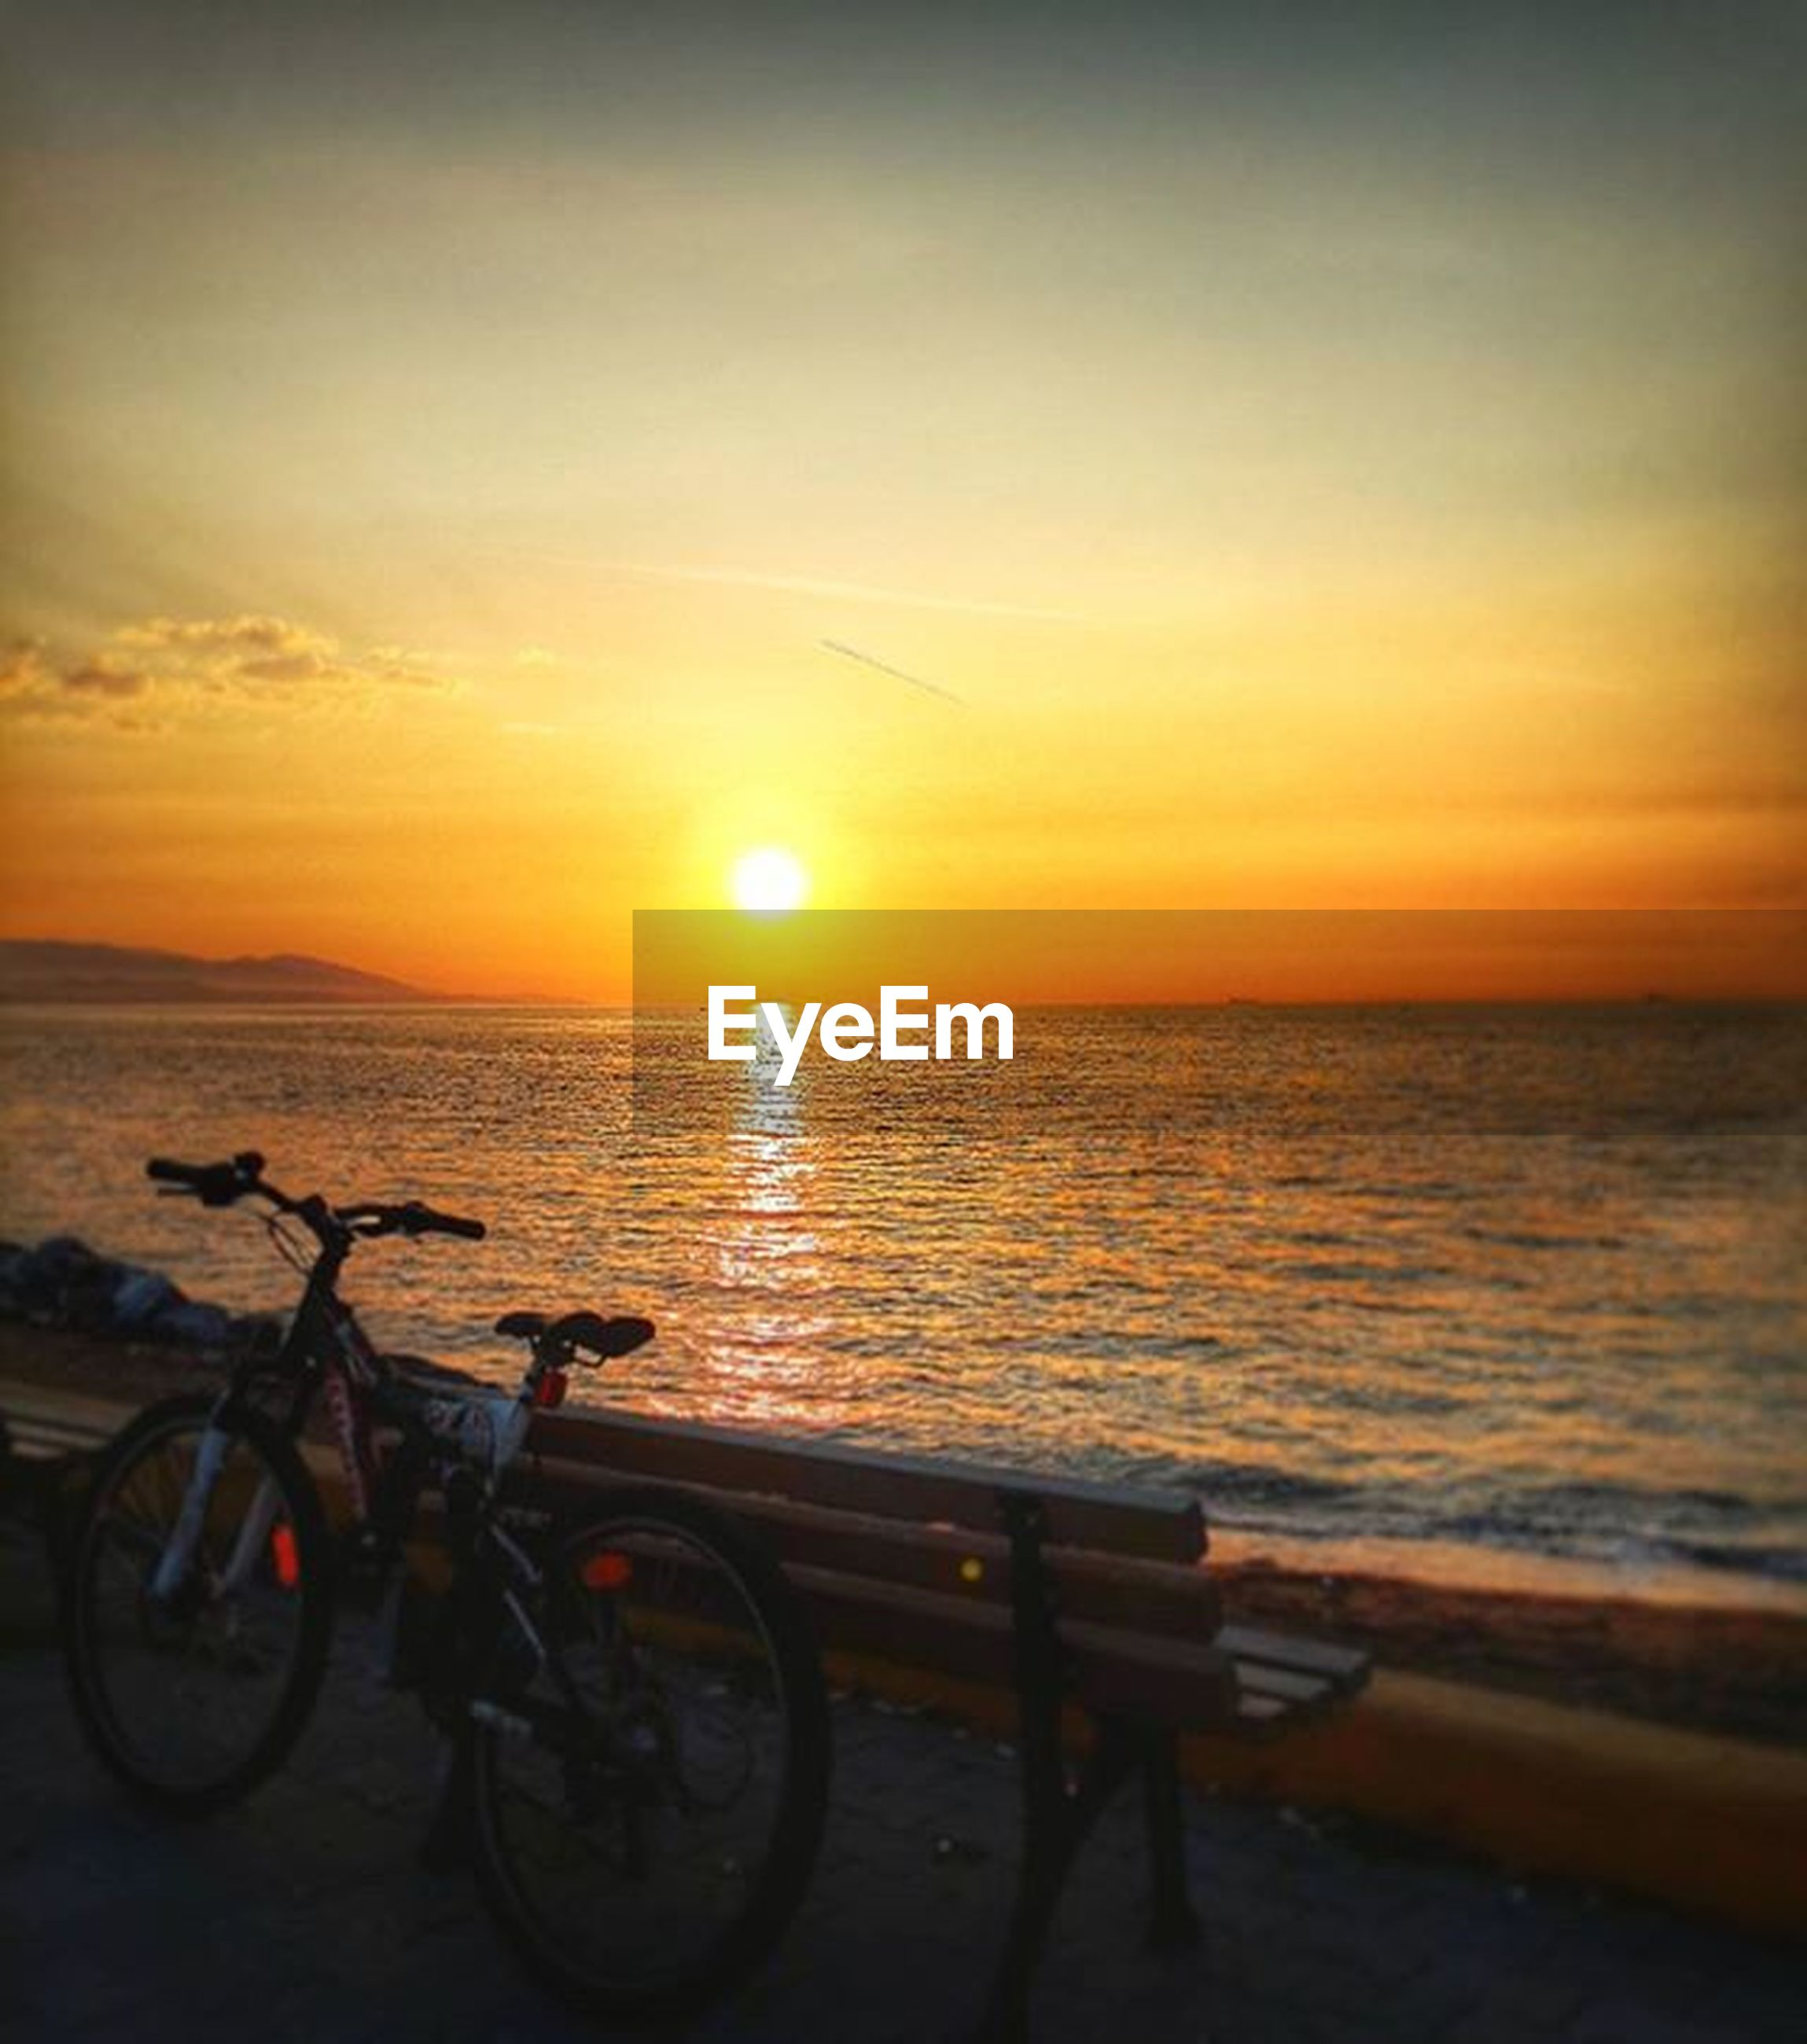 sunset, sea, horizon over water, water, sun, orange color, transportation, scenics, beauty in nature, mode of transport, bicycle, tranquility, tranquil scene, beach, sky, nature, idyllic, silhouette, shore, land vehicle